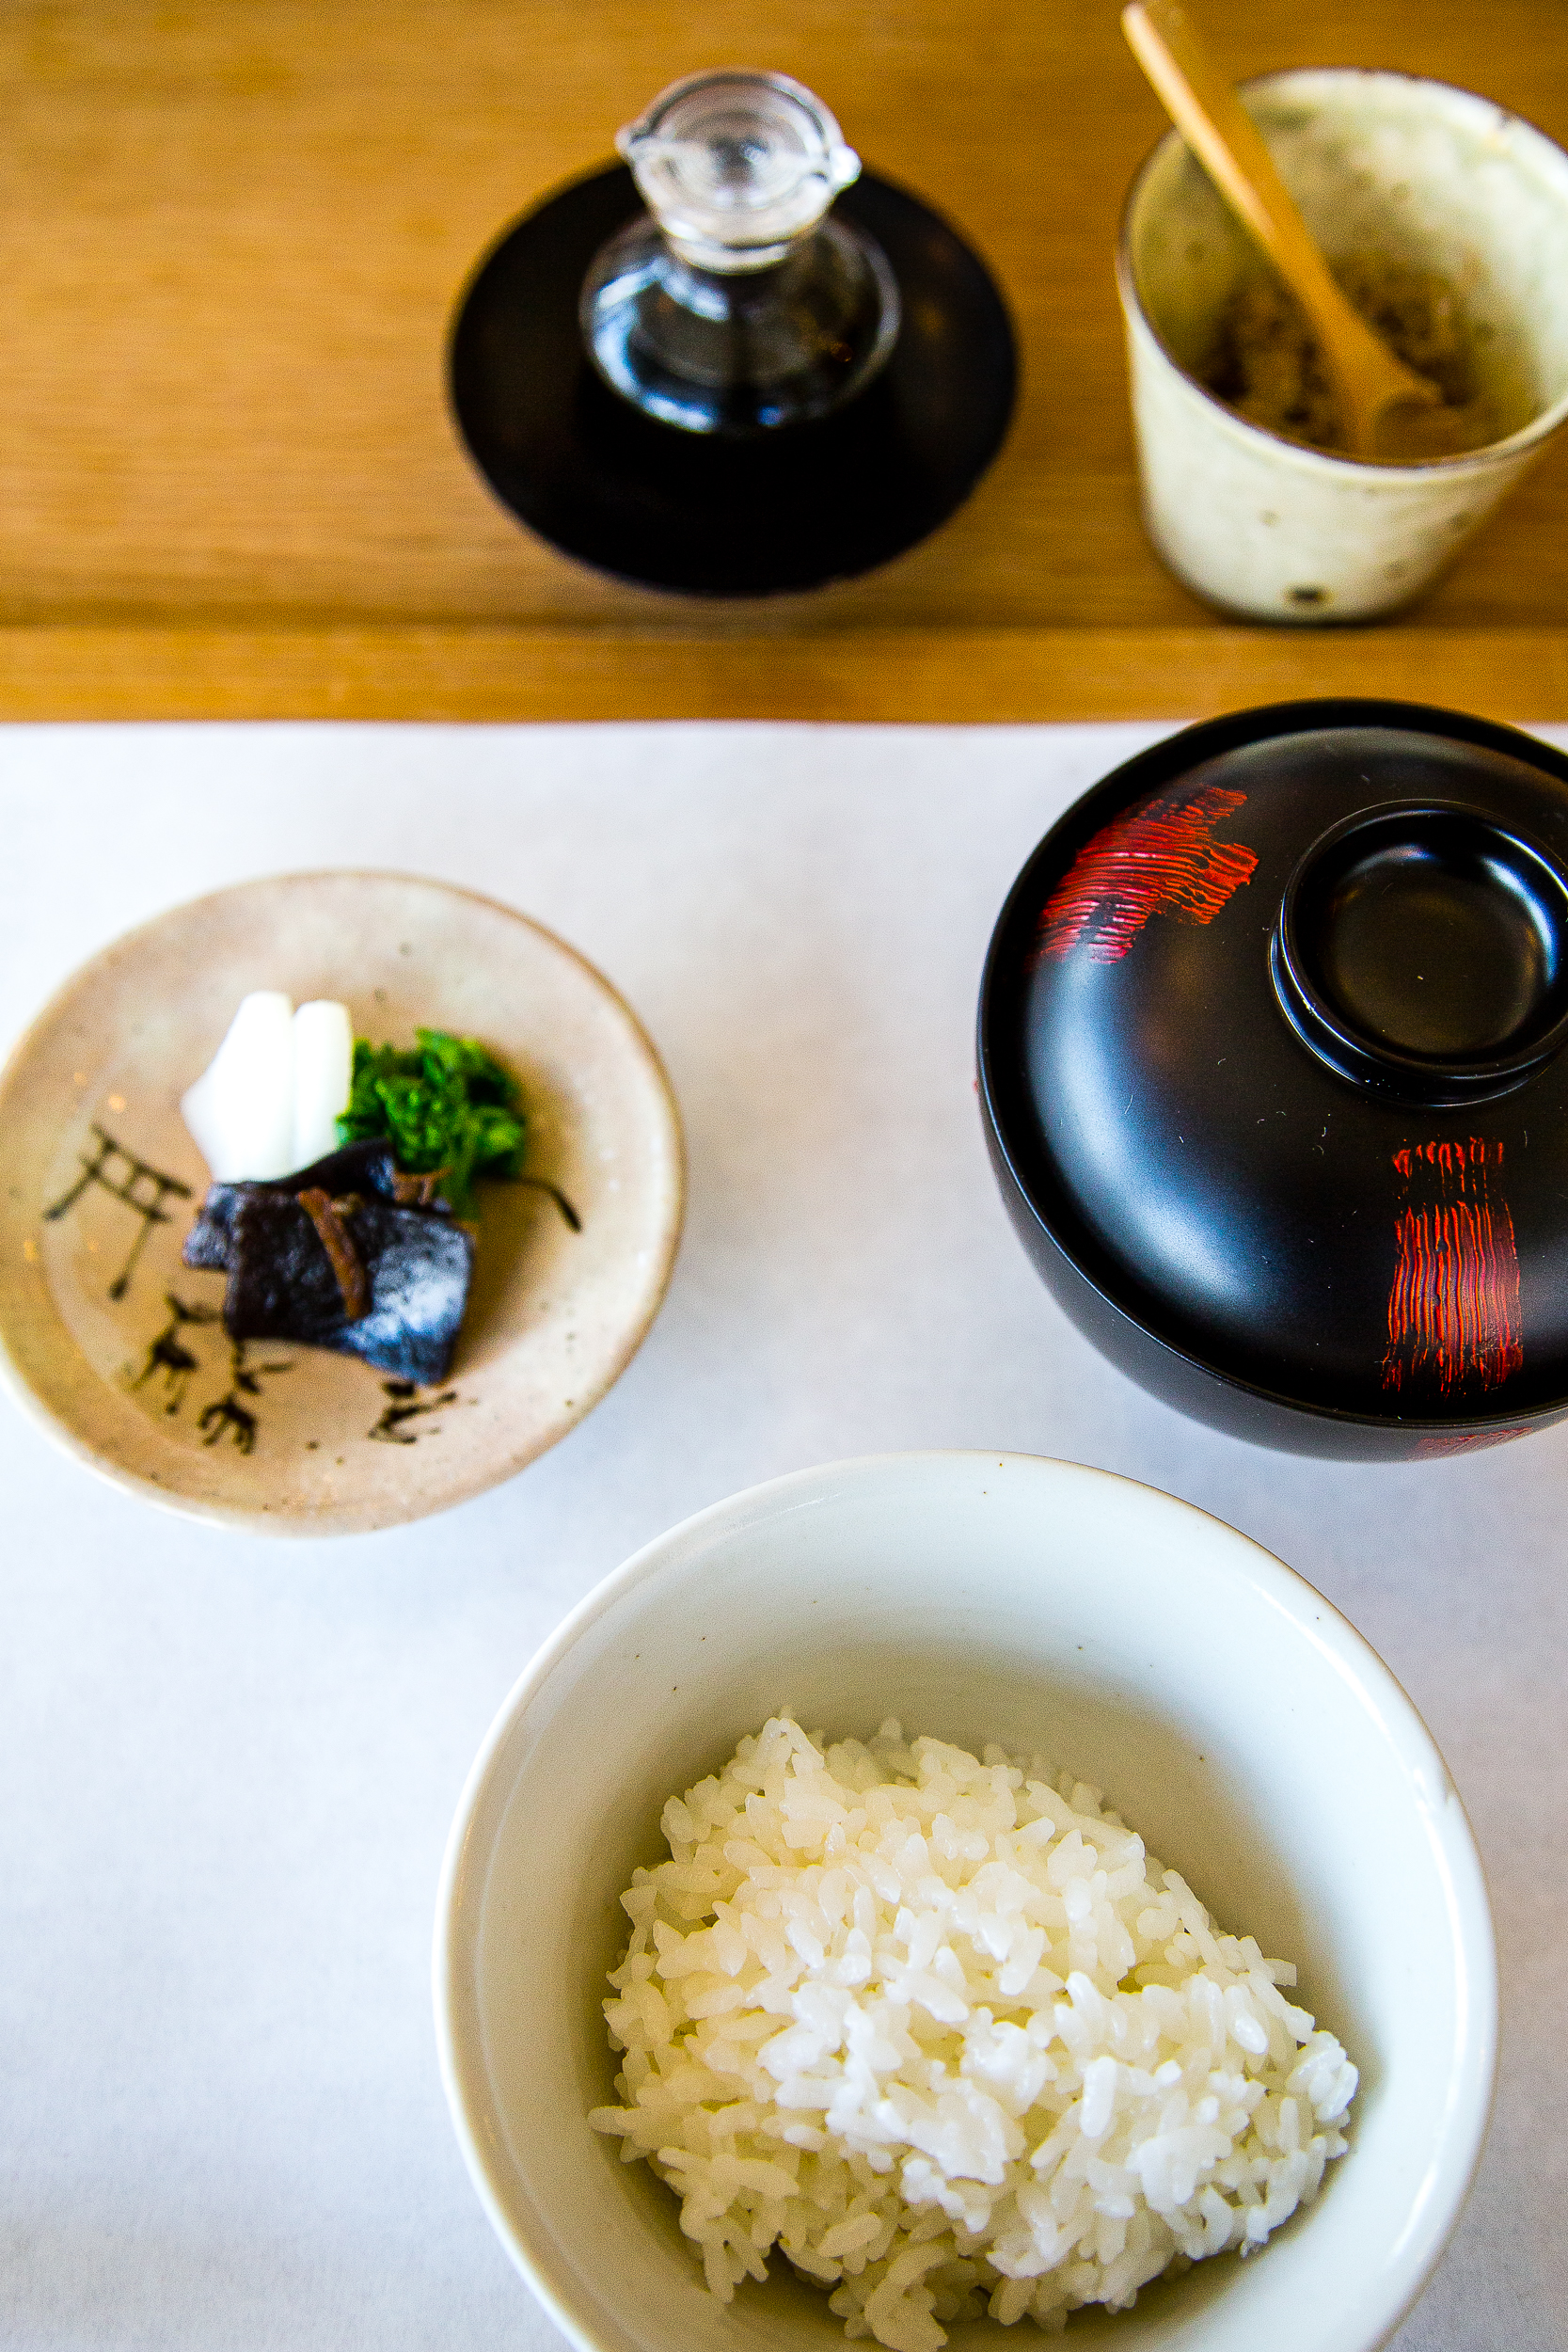 Rice, Miso Soup, Pickles